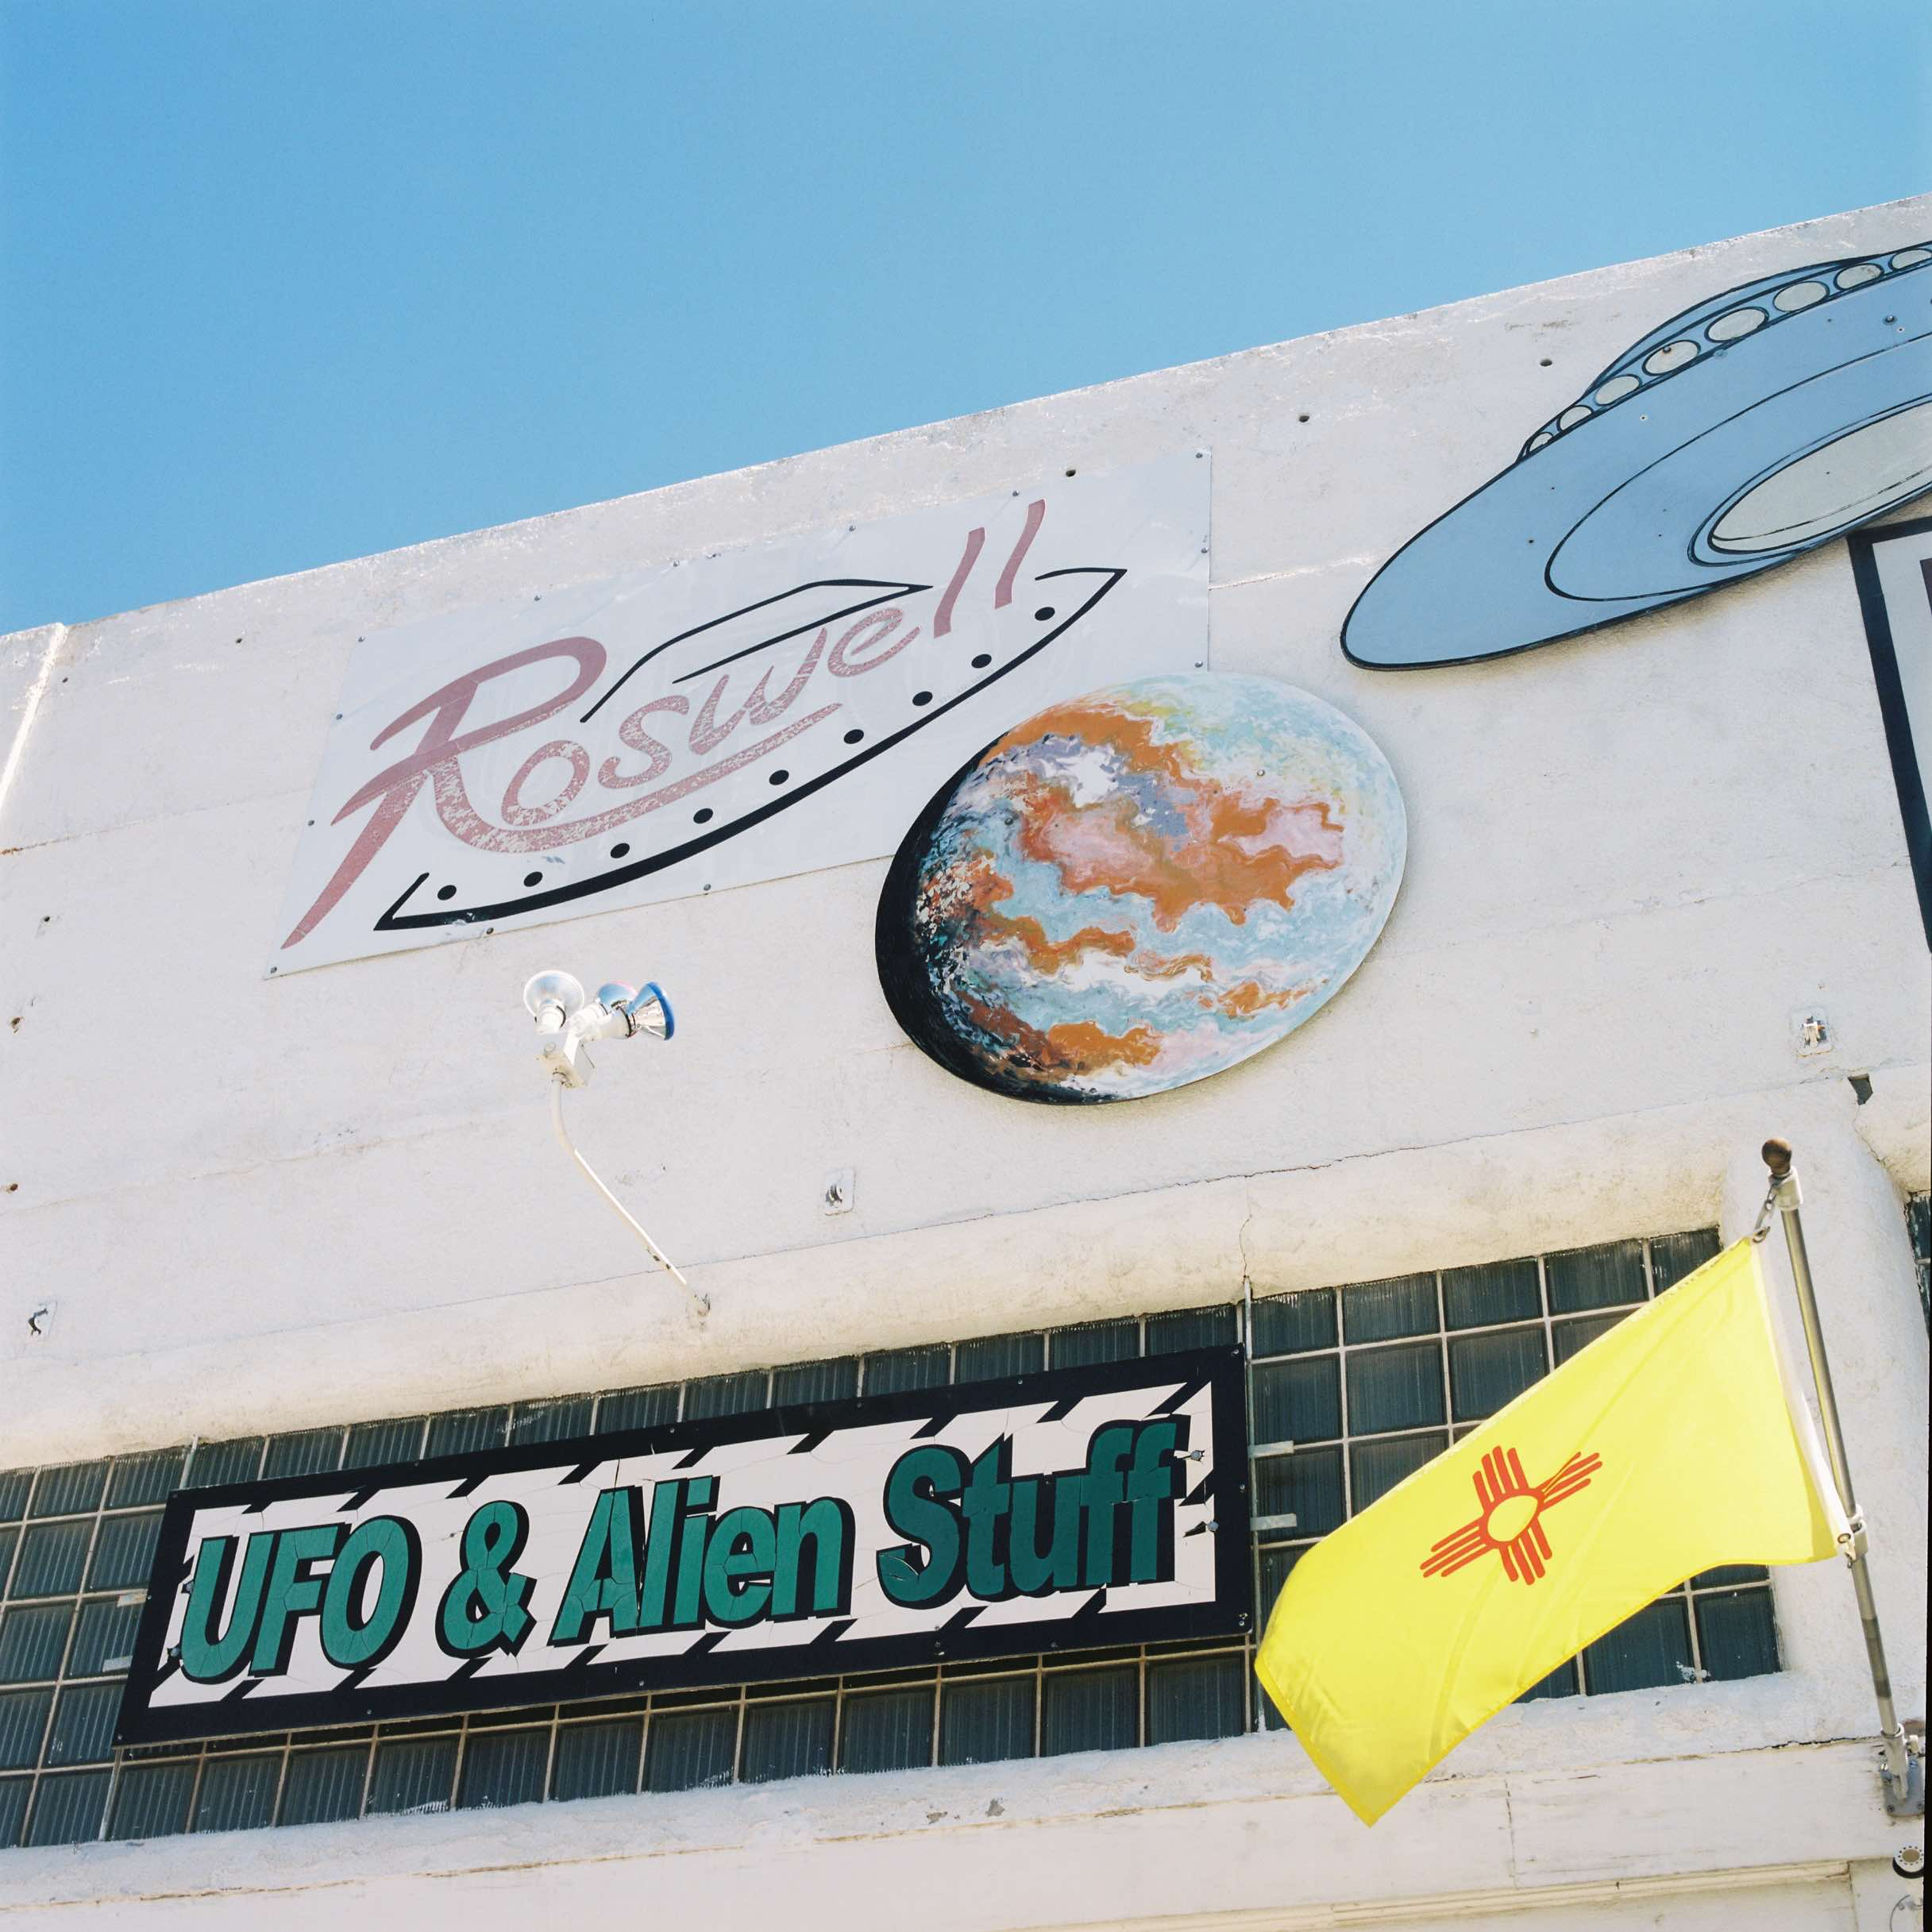 photo - Roswell UFO and Alien store